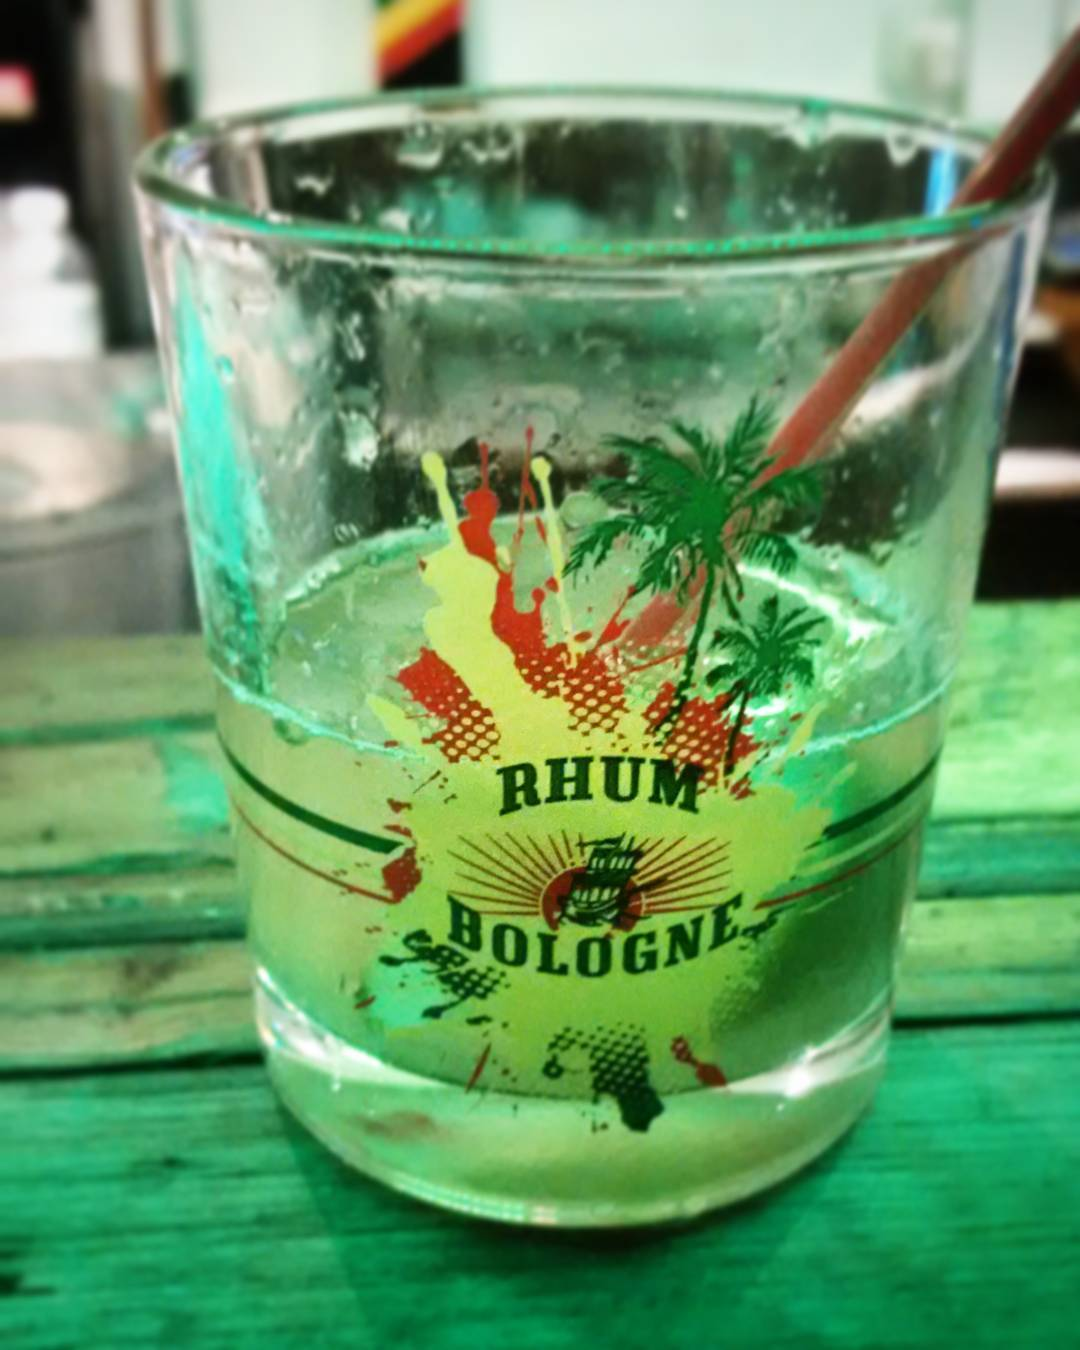 When on the island, you must partake like they do on the island - Ti Punch. Be careful, these can sneak up on you after a few and some sun!!